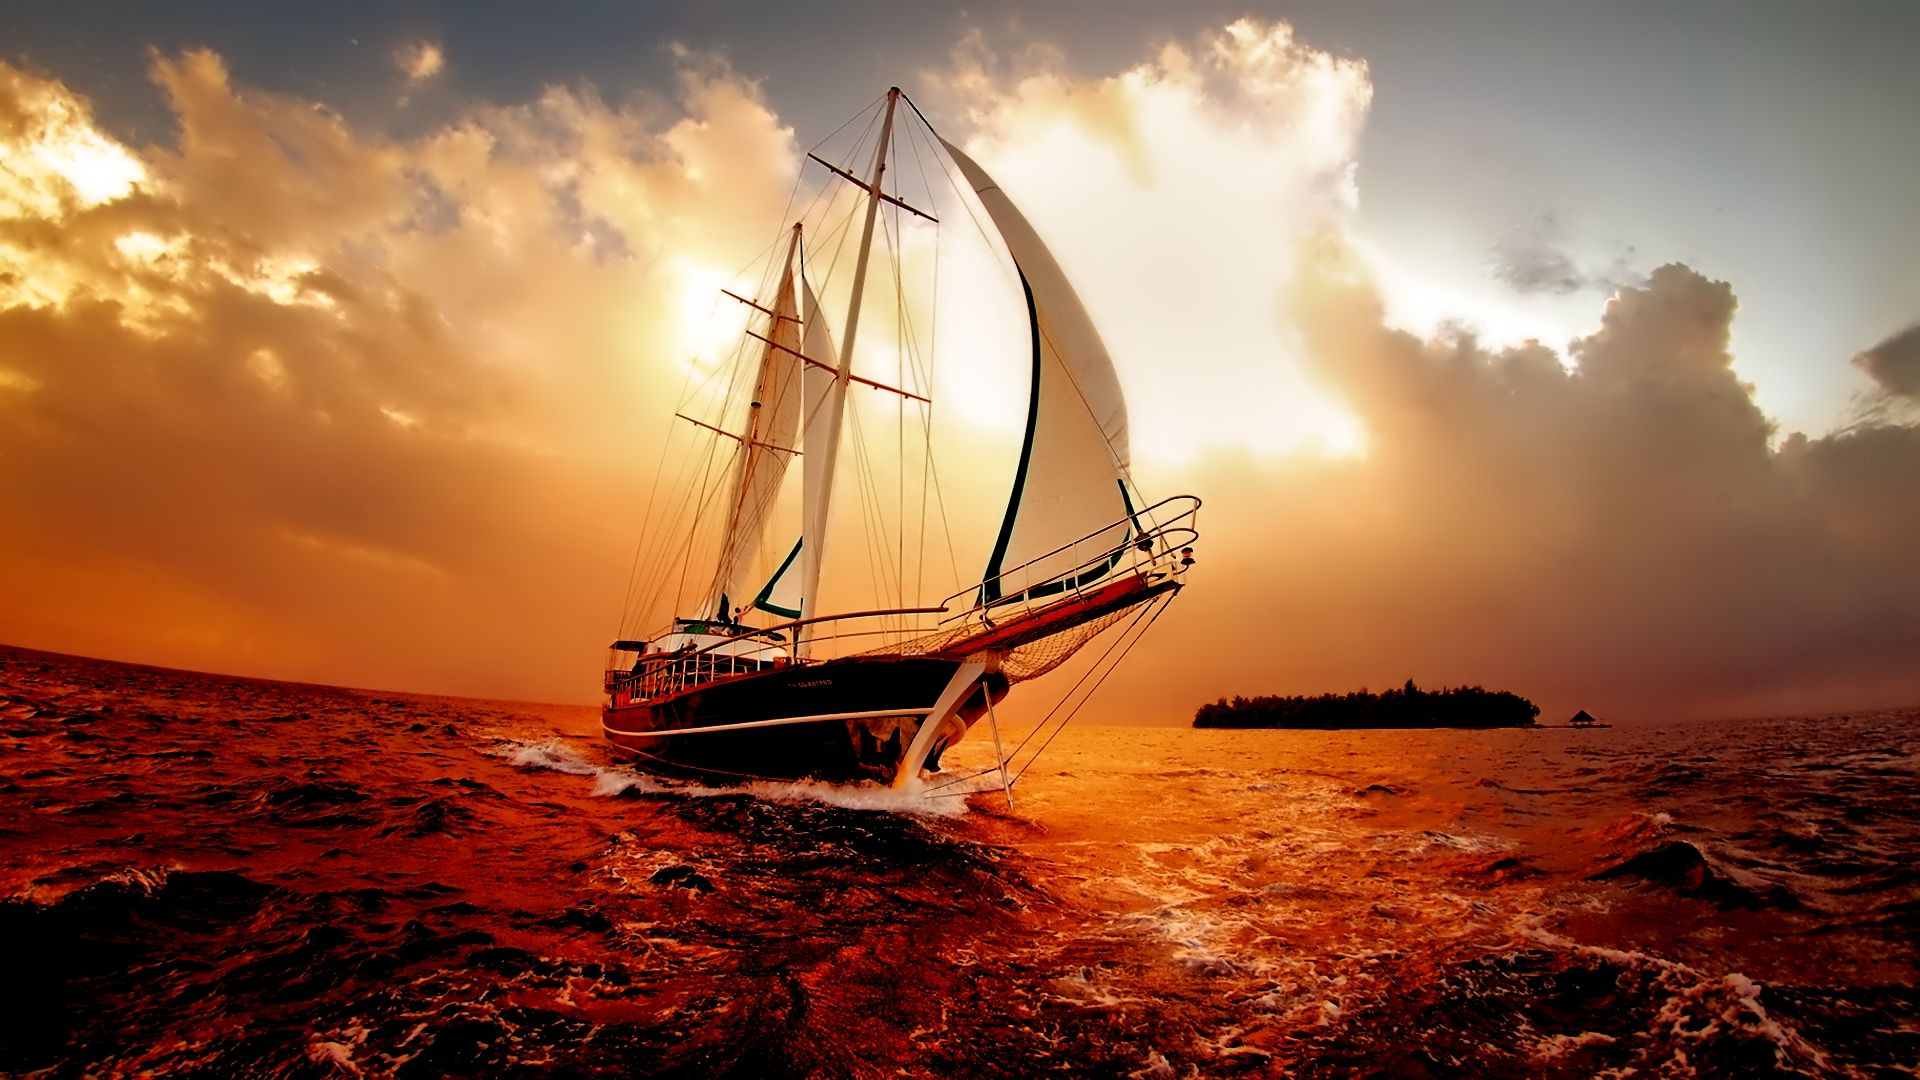 hd wallpapers new fresh desktop background sail boat ships cool images boats pinterest sail boats hd wallpaper and desktop backgrounds